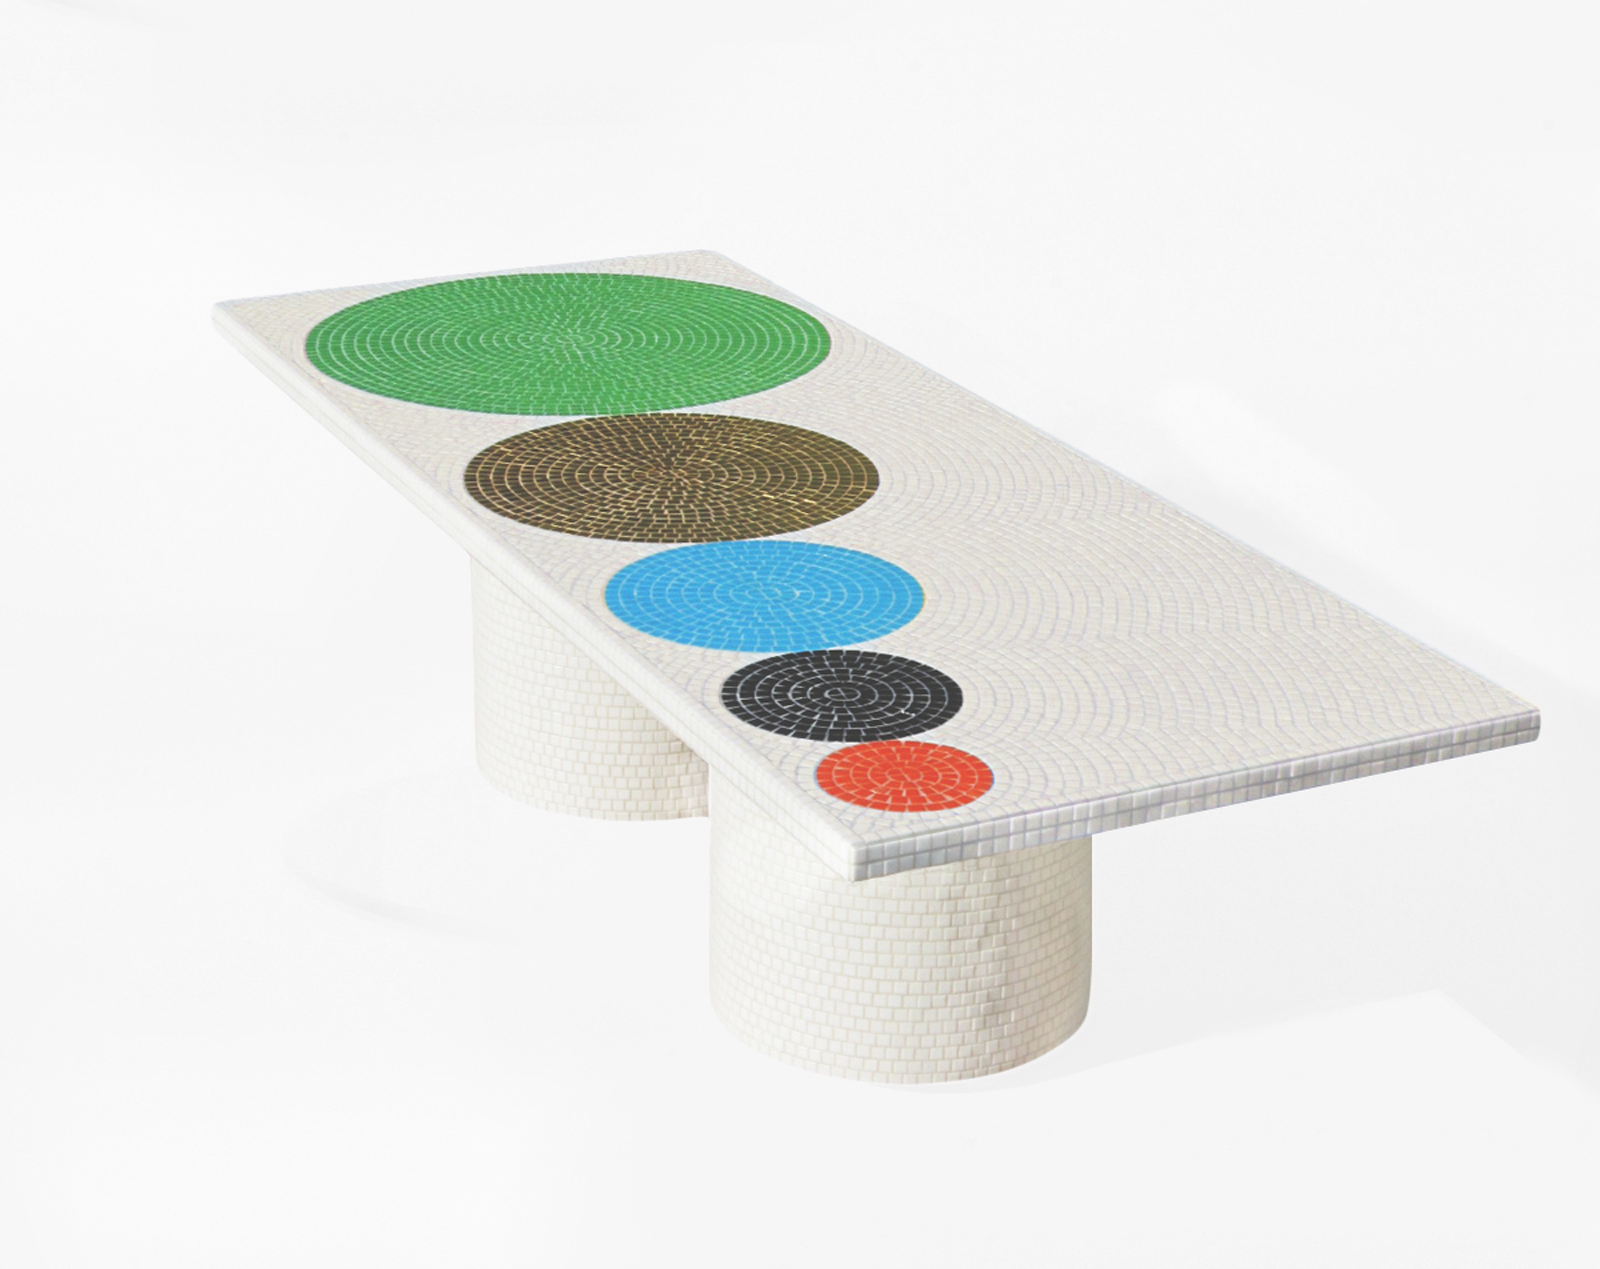 Tile table by Pierre Charpin